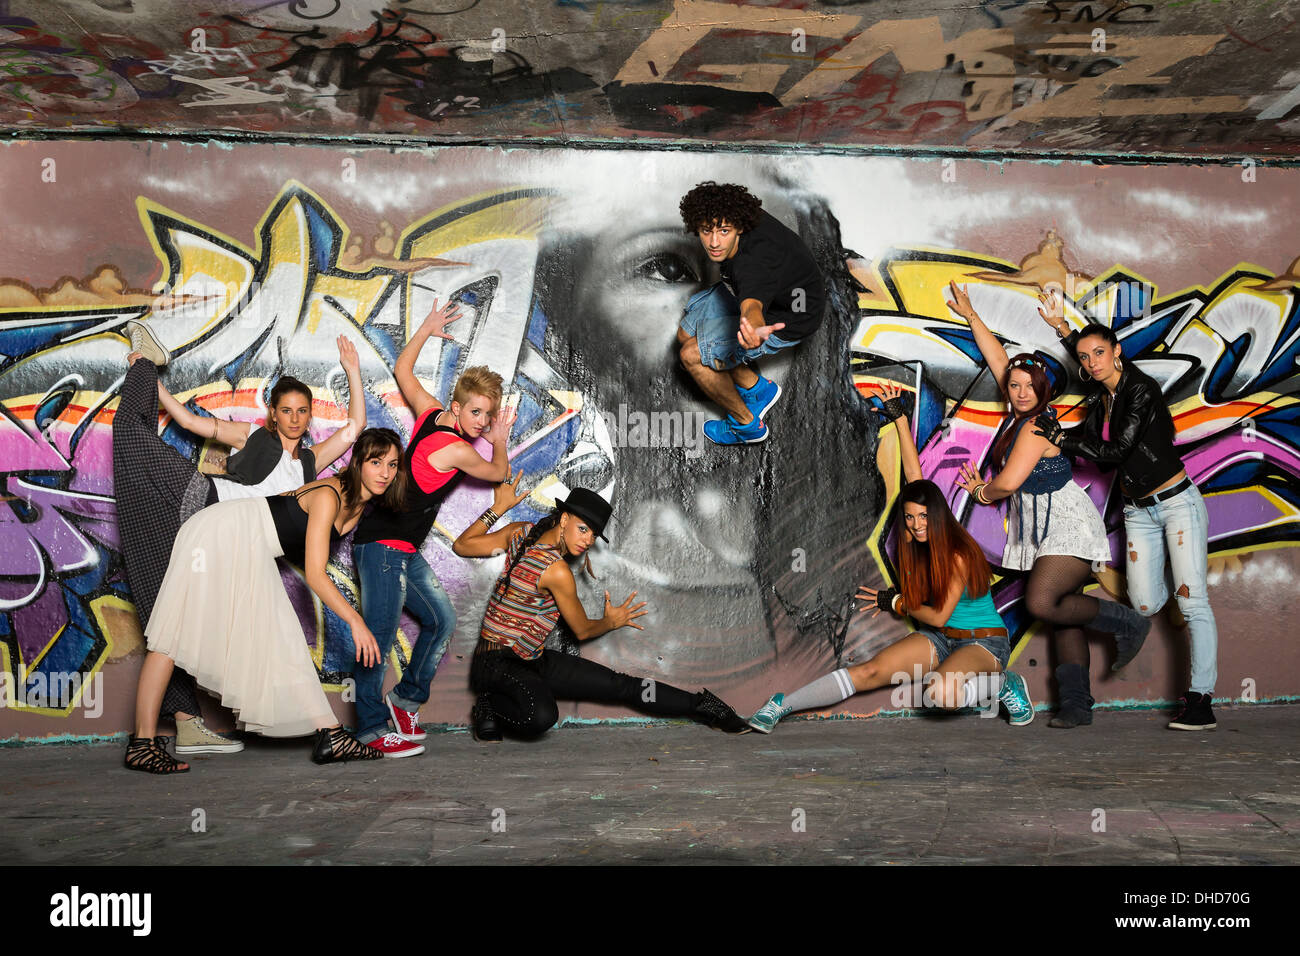 Germany, Stuttgart, Hall of Fame, Group of Hip Hop dancers at airbrush wall Stock Photo